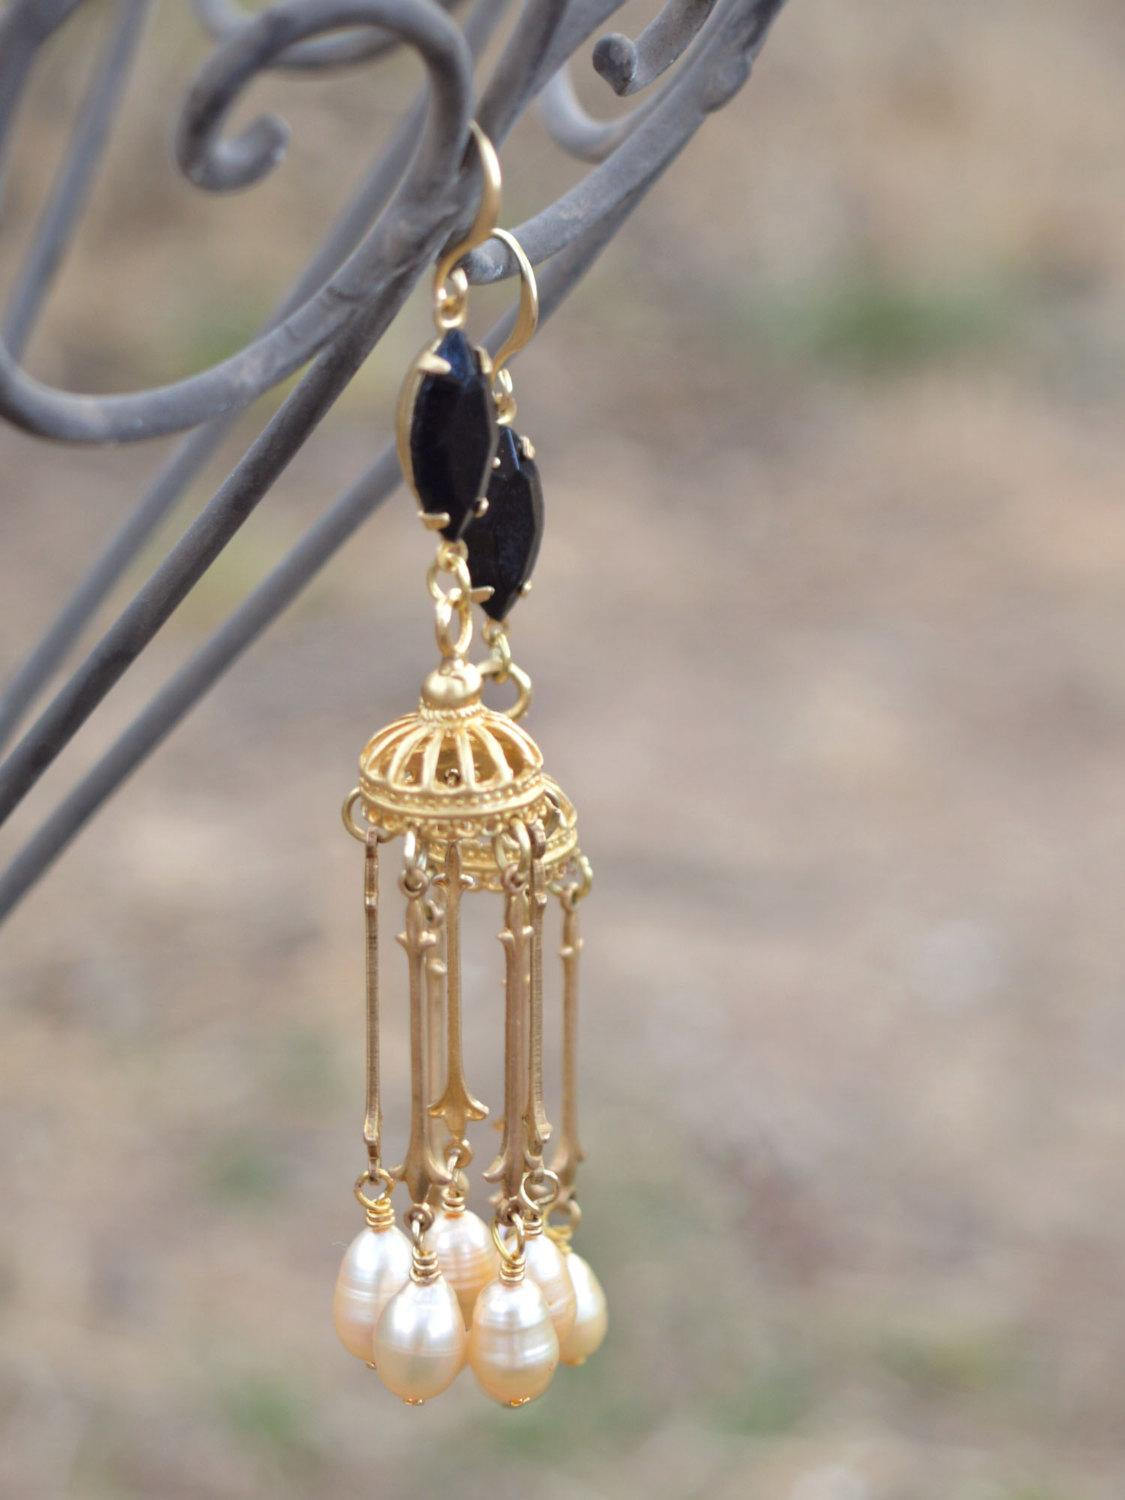 Elegant gold drop earrings with pearls and crystals.